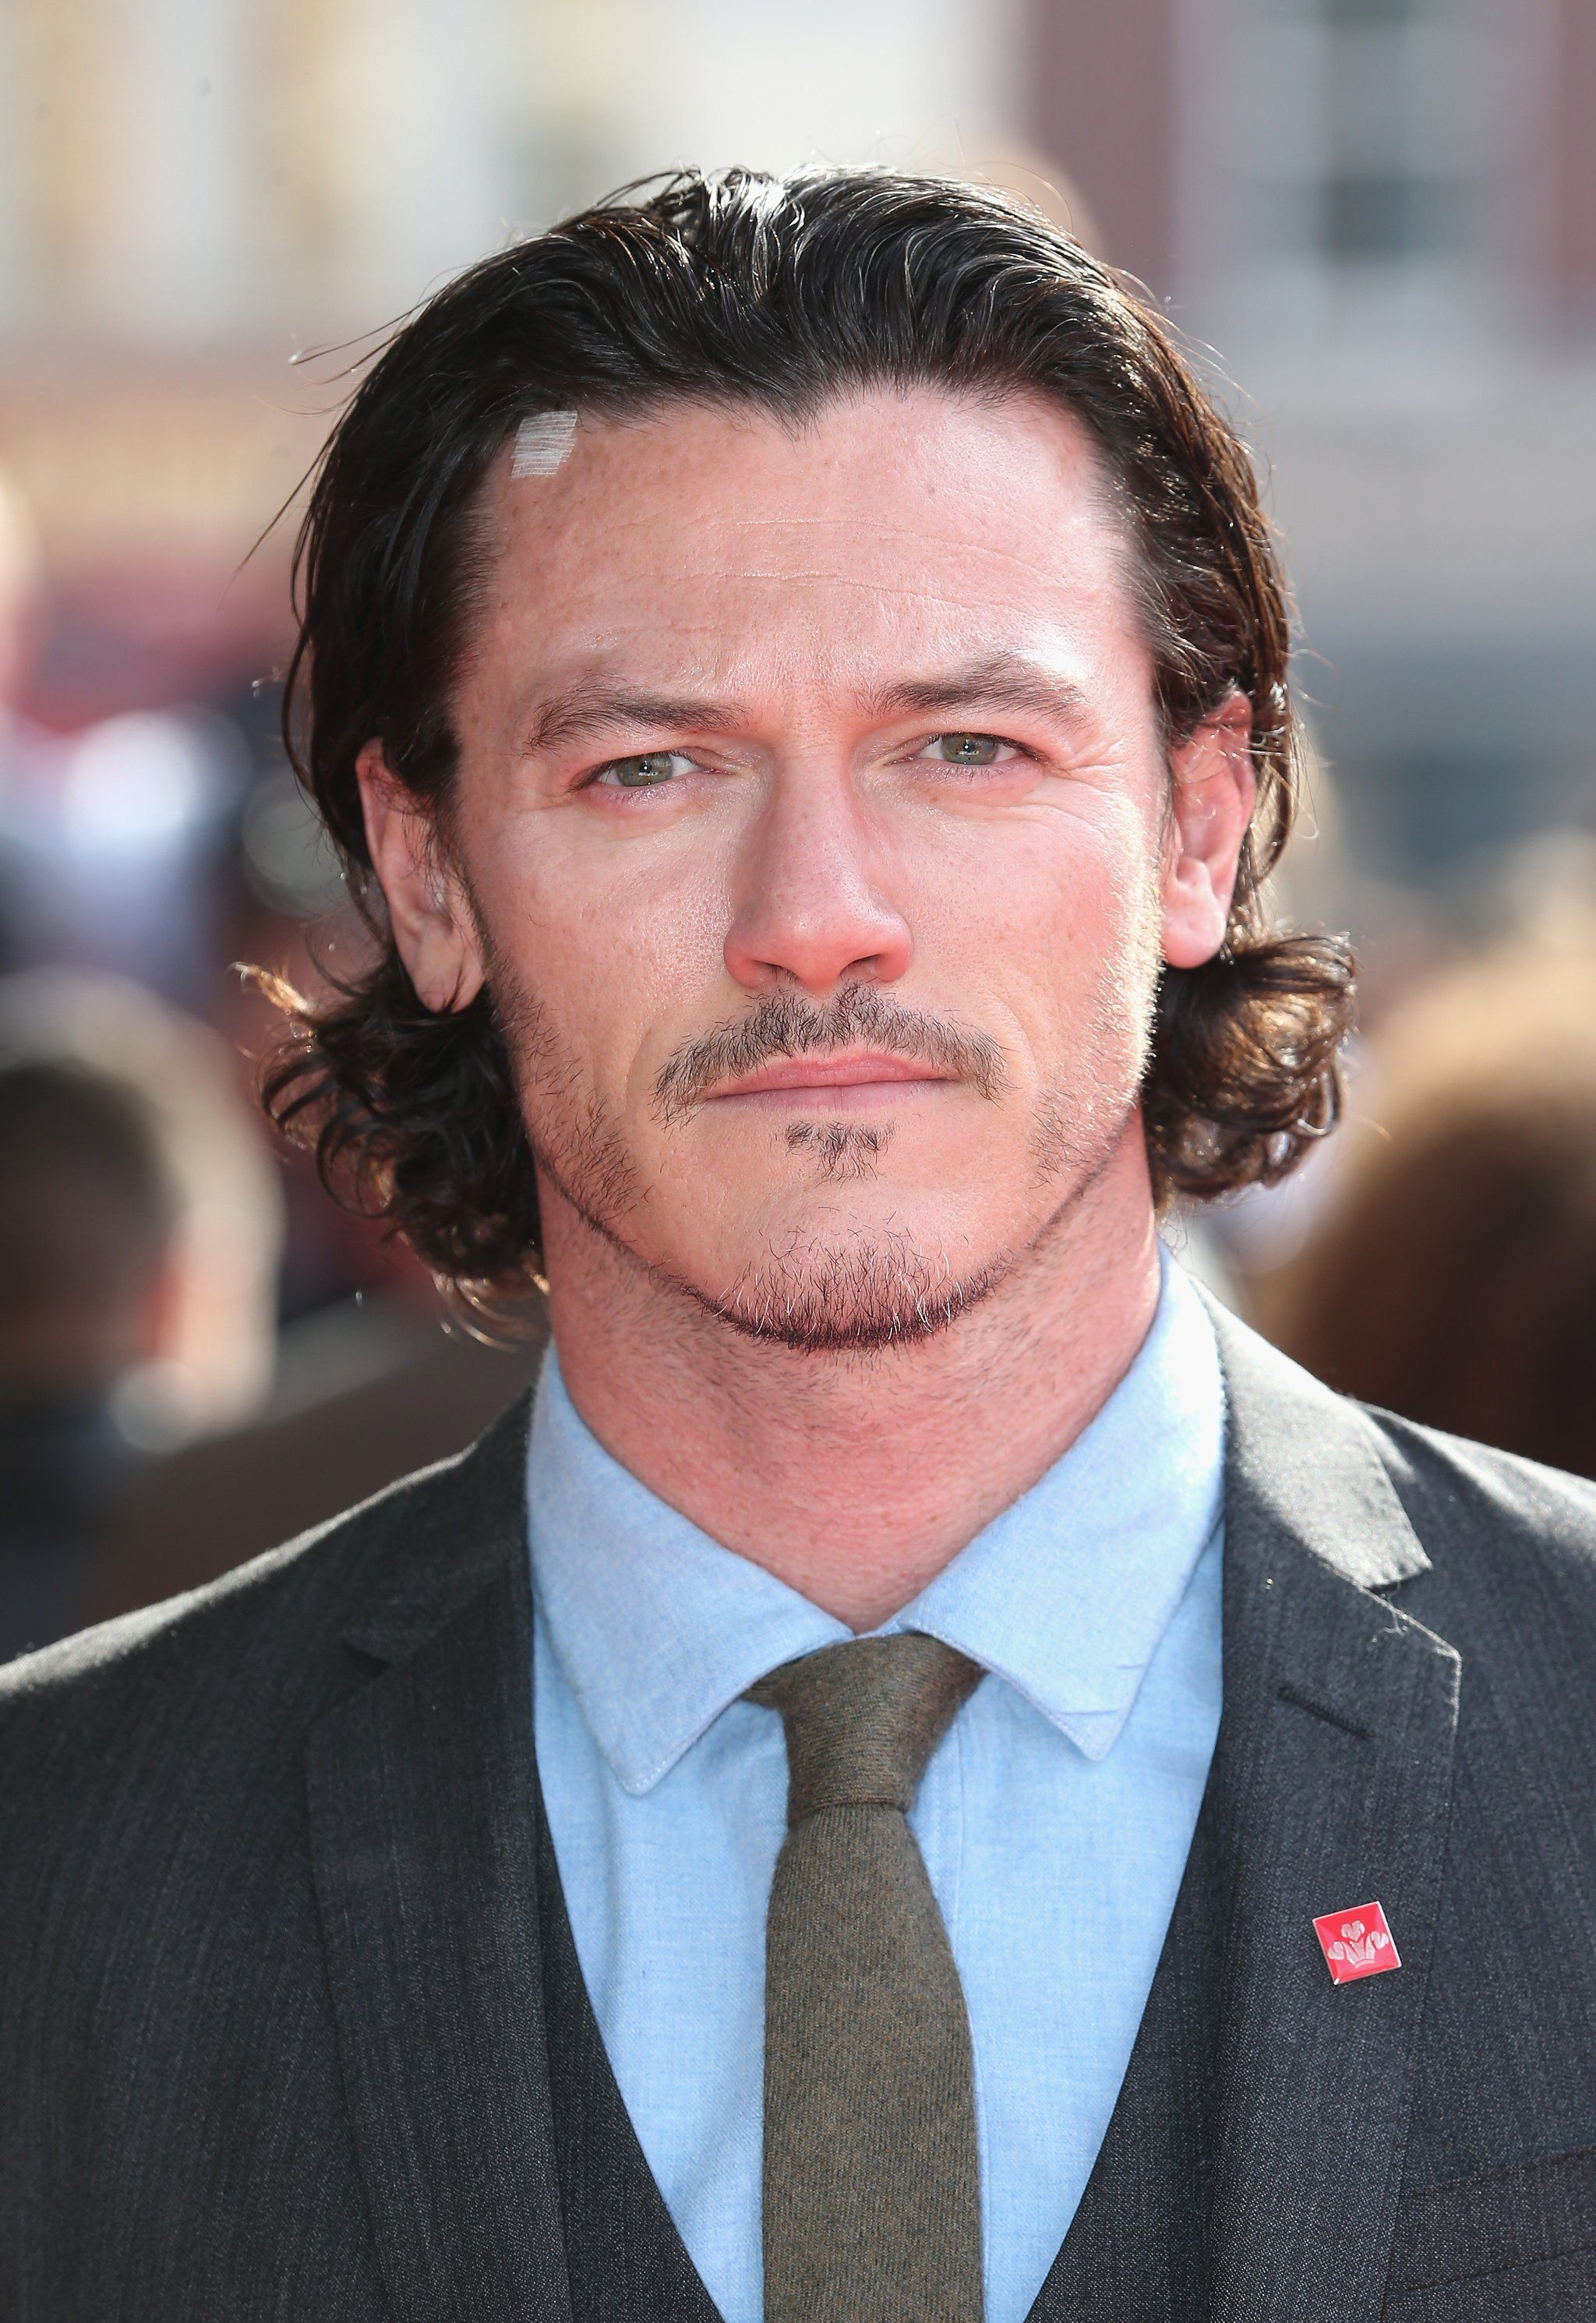 These Steamy Luke Evans Pictures Will Ma-These Steamy Luke Evans Pictures Will Make You Crank the AC Up to Full Blast-11